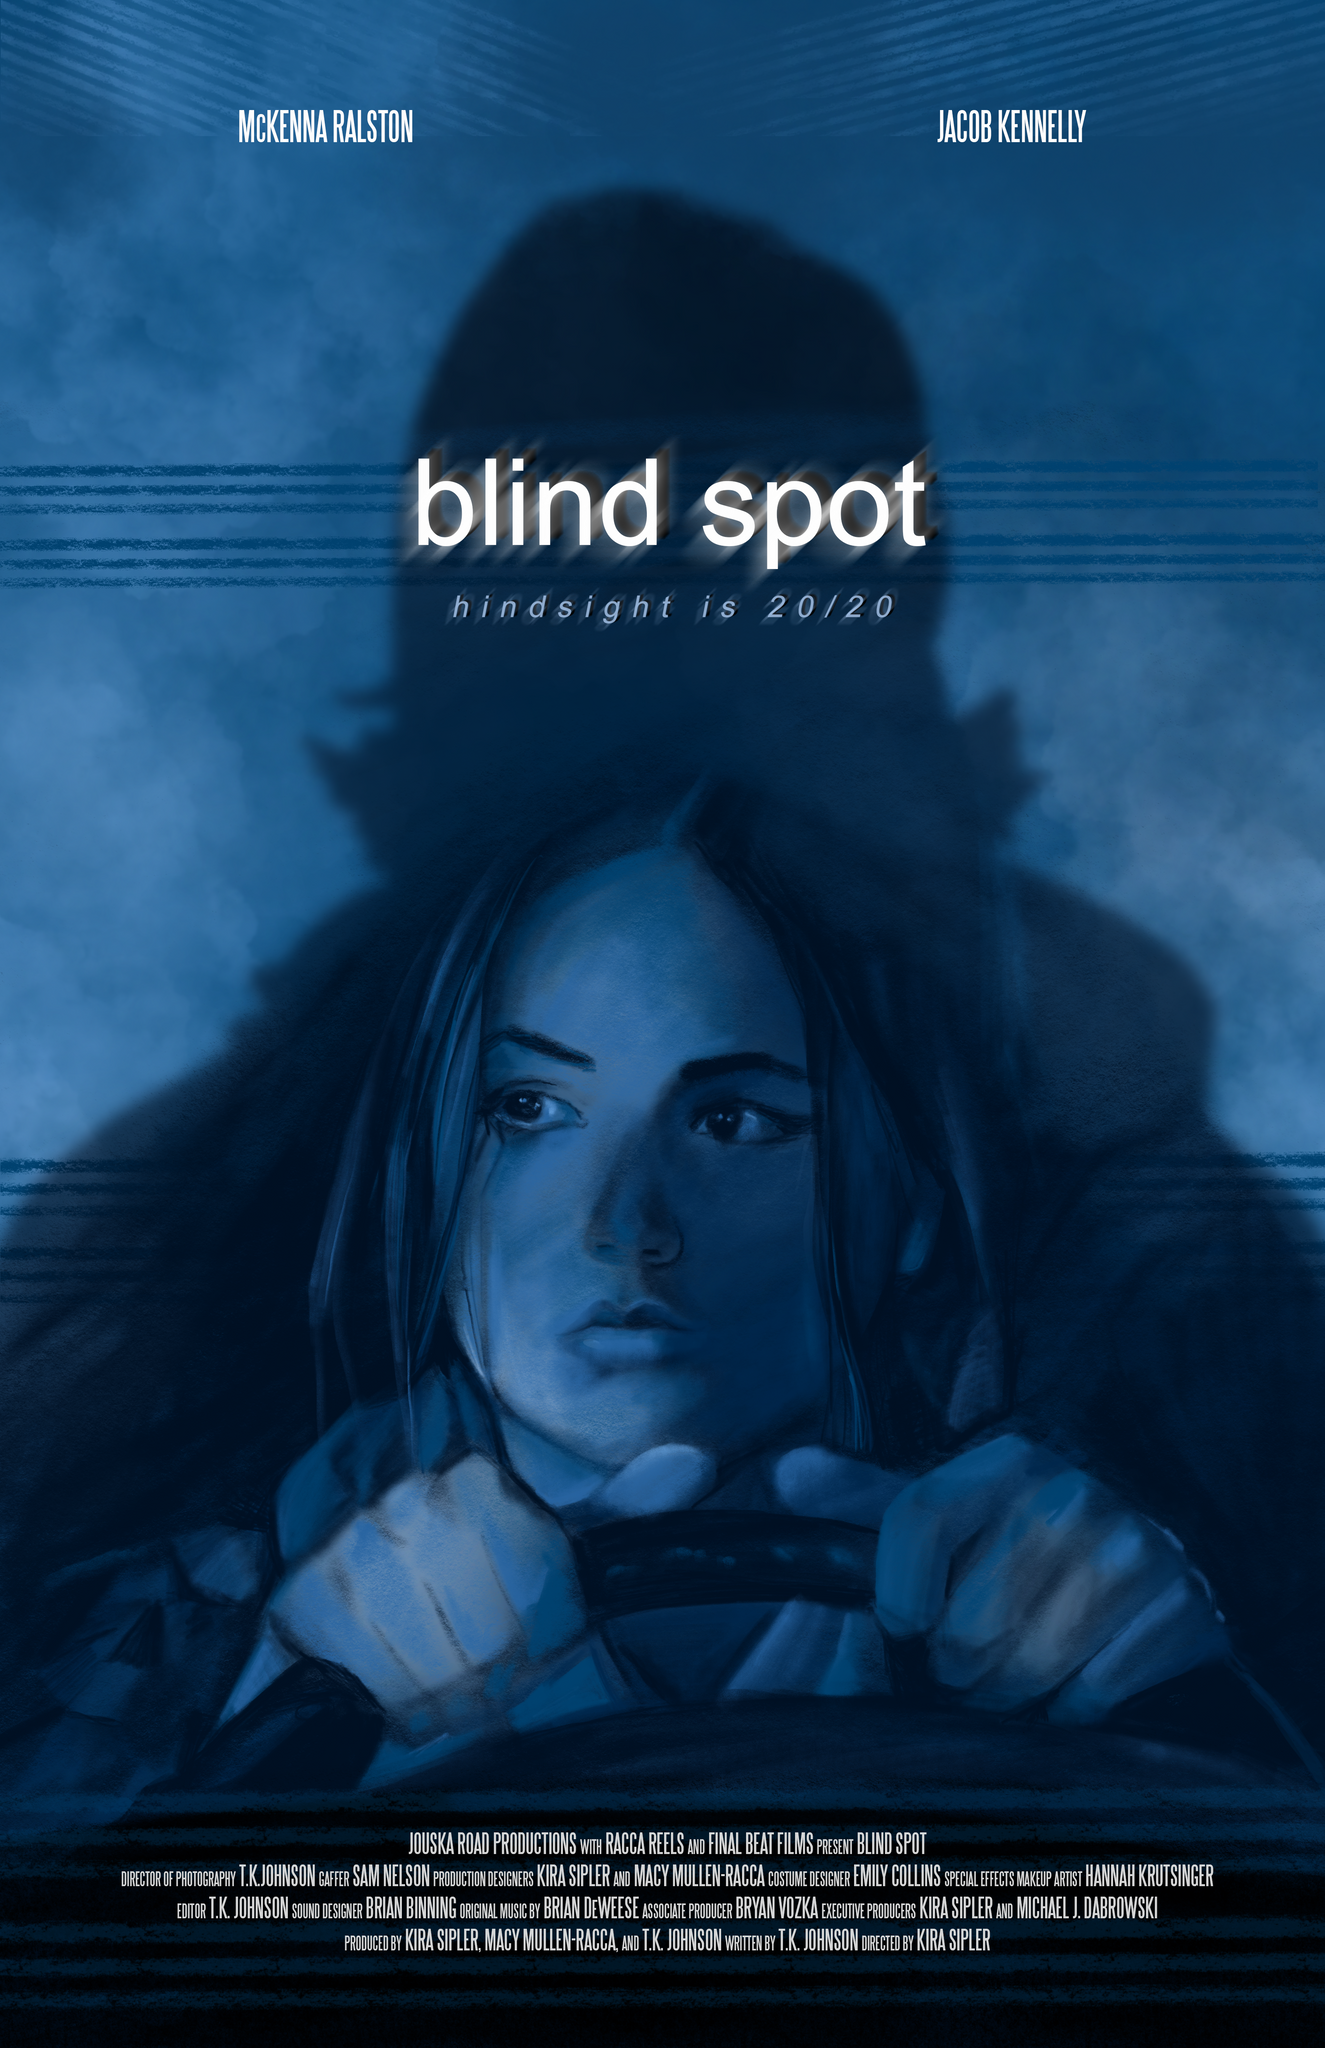 """blind spot"" Poster Design -thoughts behind the design"